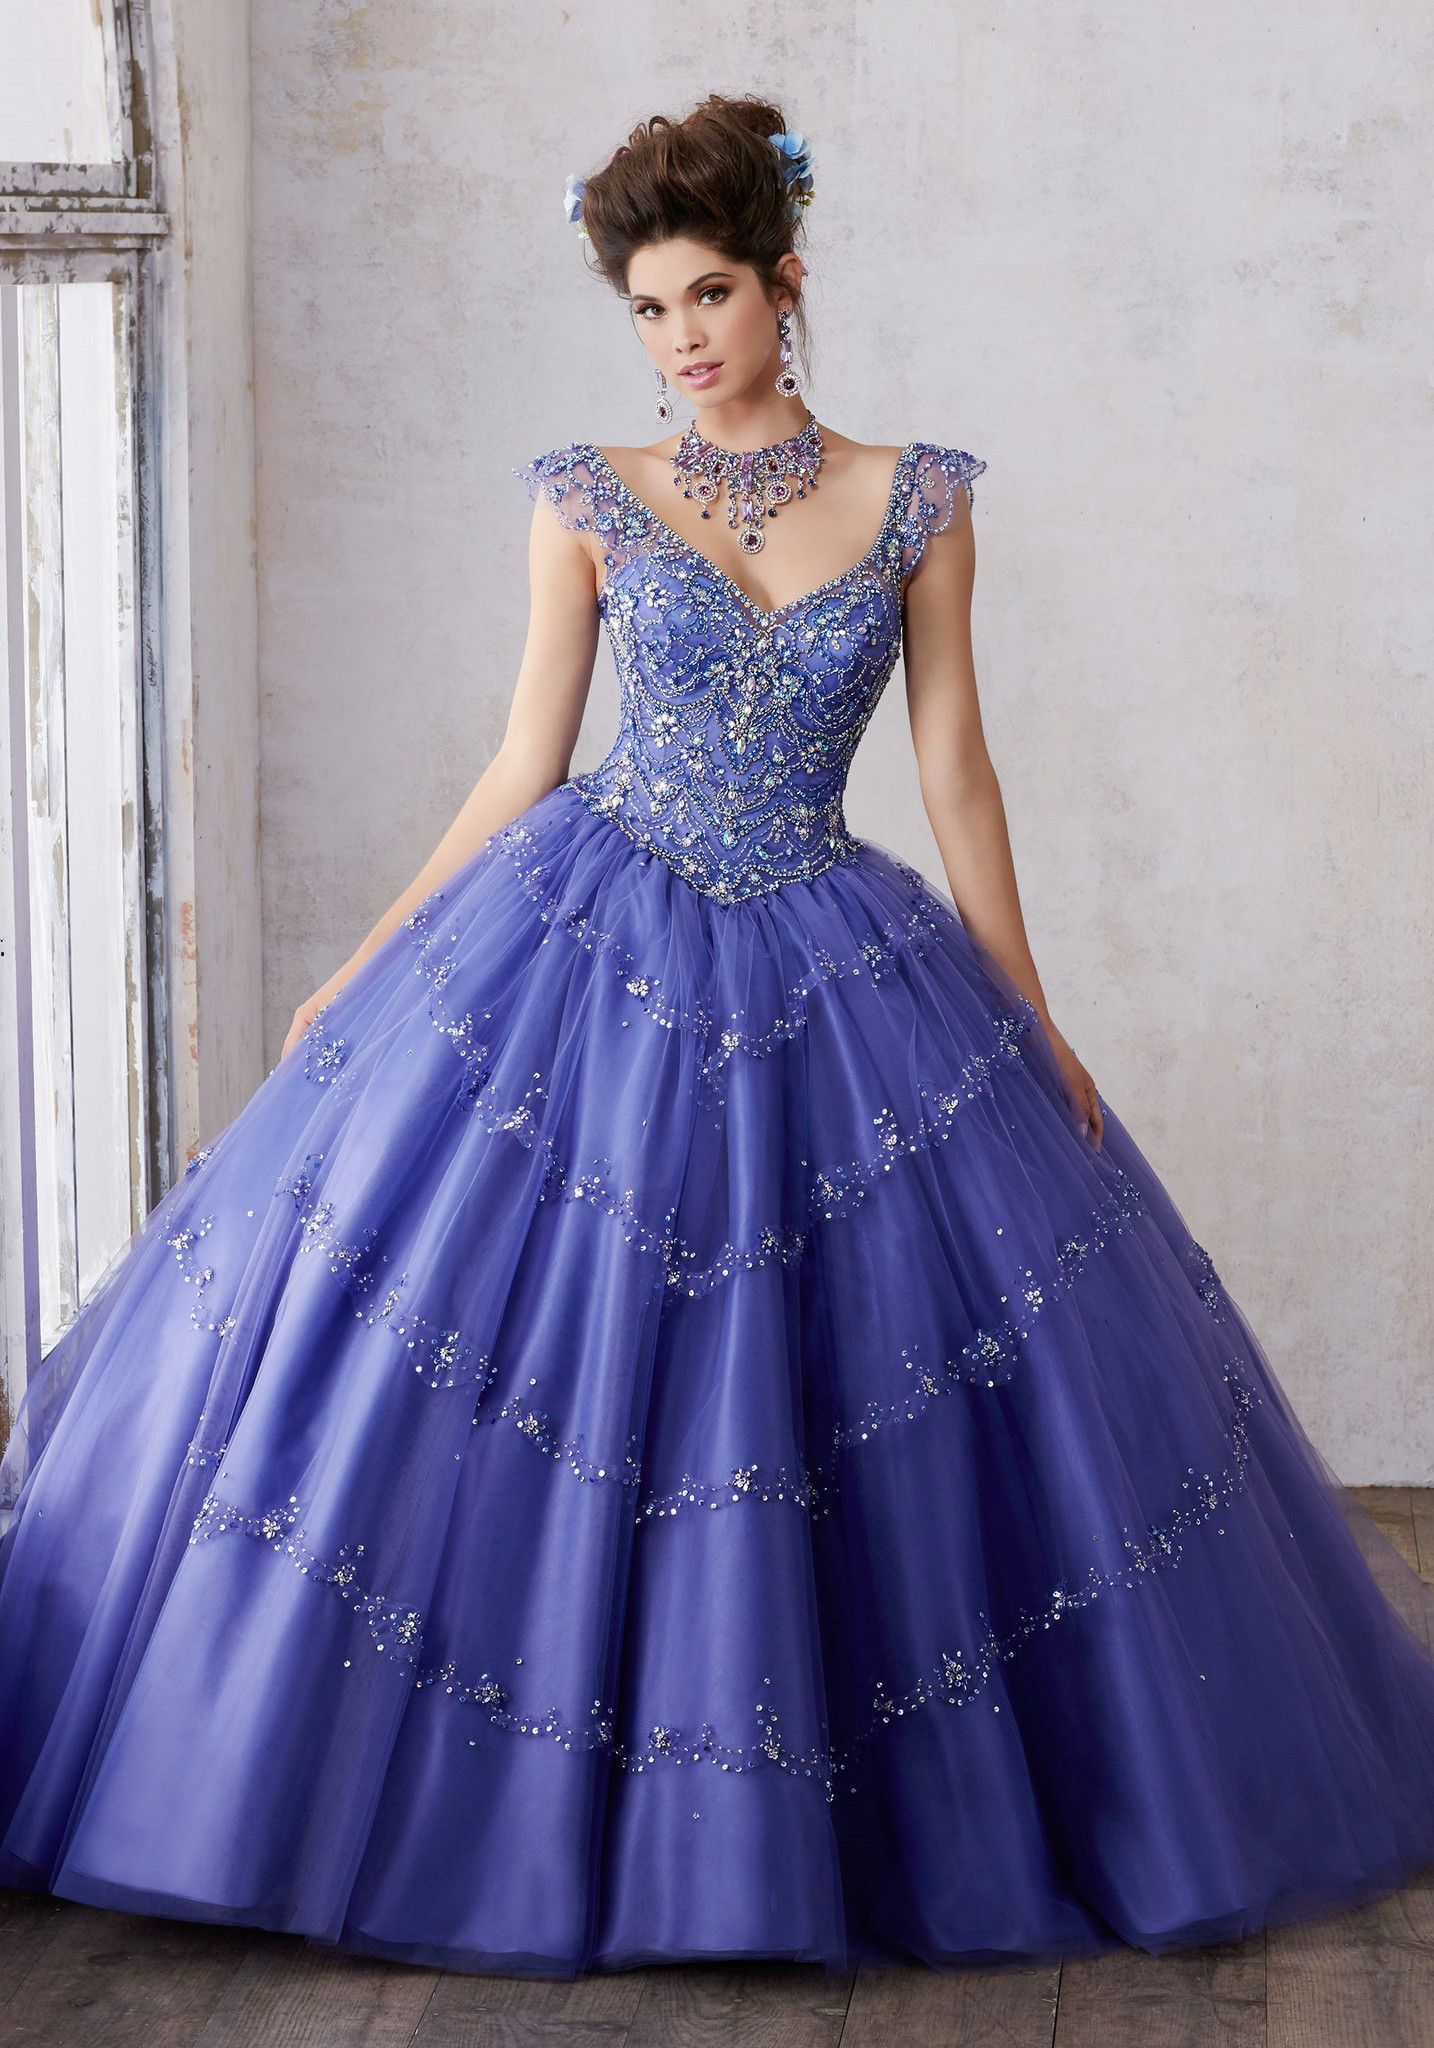 Mori Lee Quinceanera Dress 89136 | Mori lee, Gowns and Xv dresses